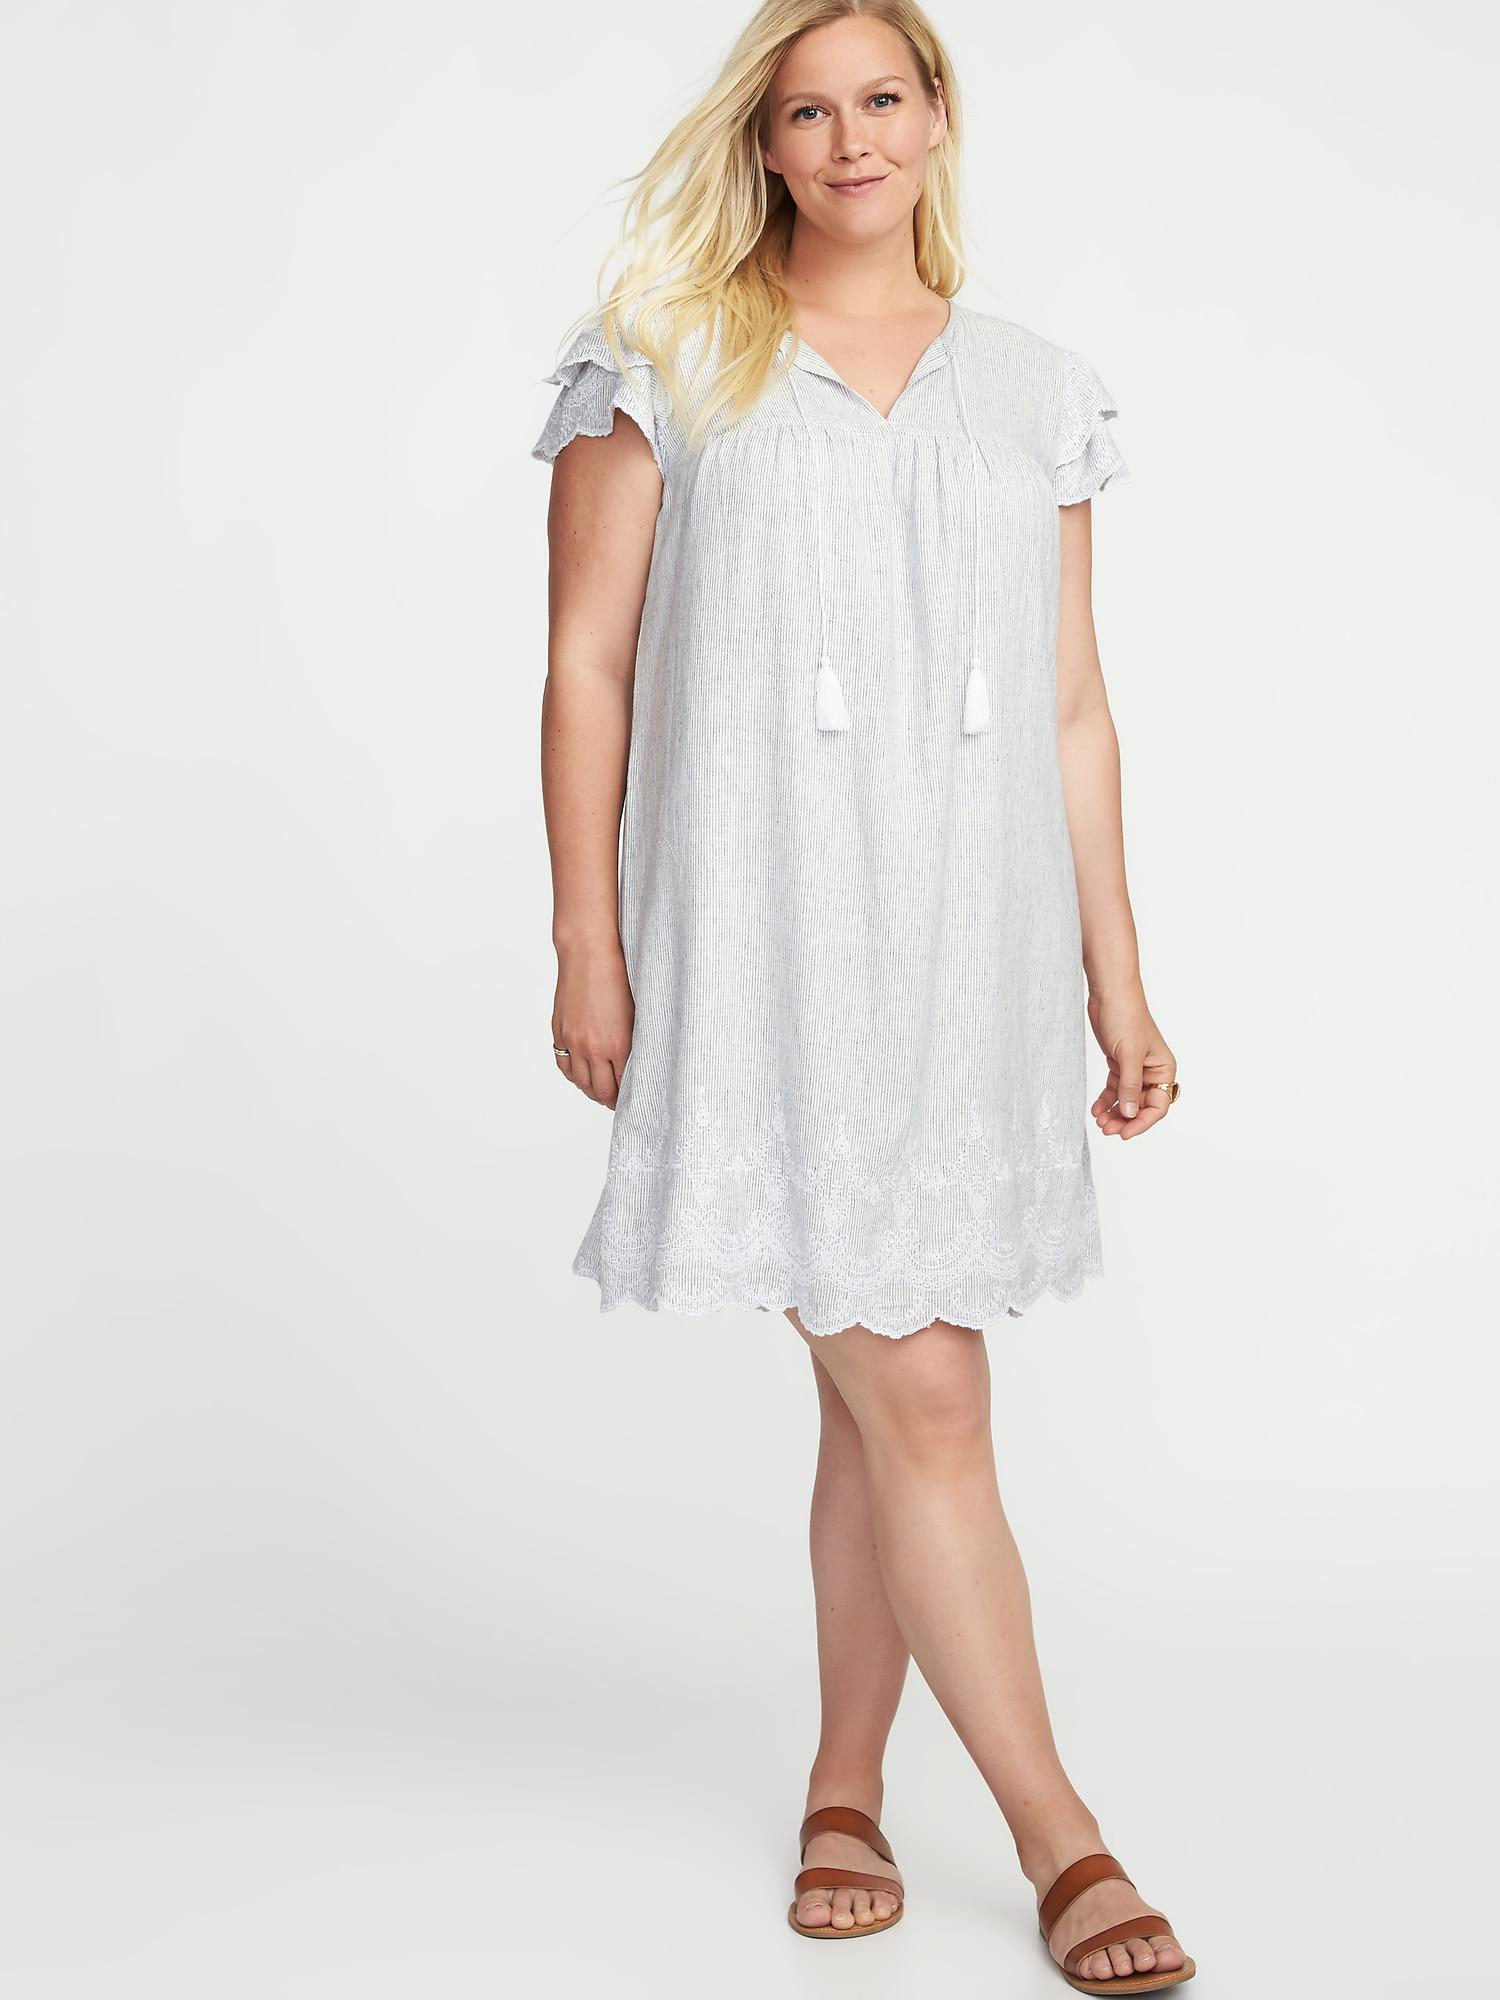 4f08b33a8ae3b Lyst - Old Navy Plus-size Linen-blend Cutwork Swing Dress in White